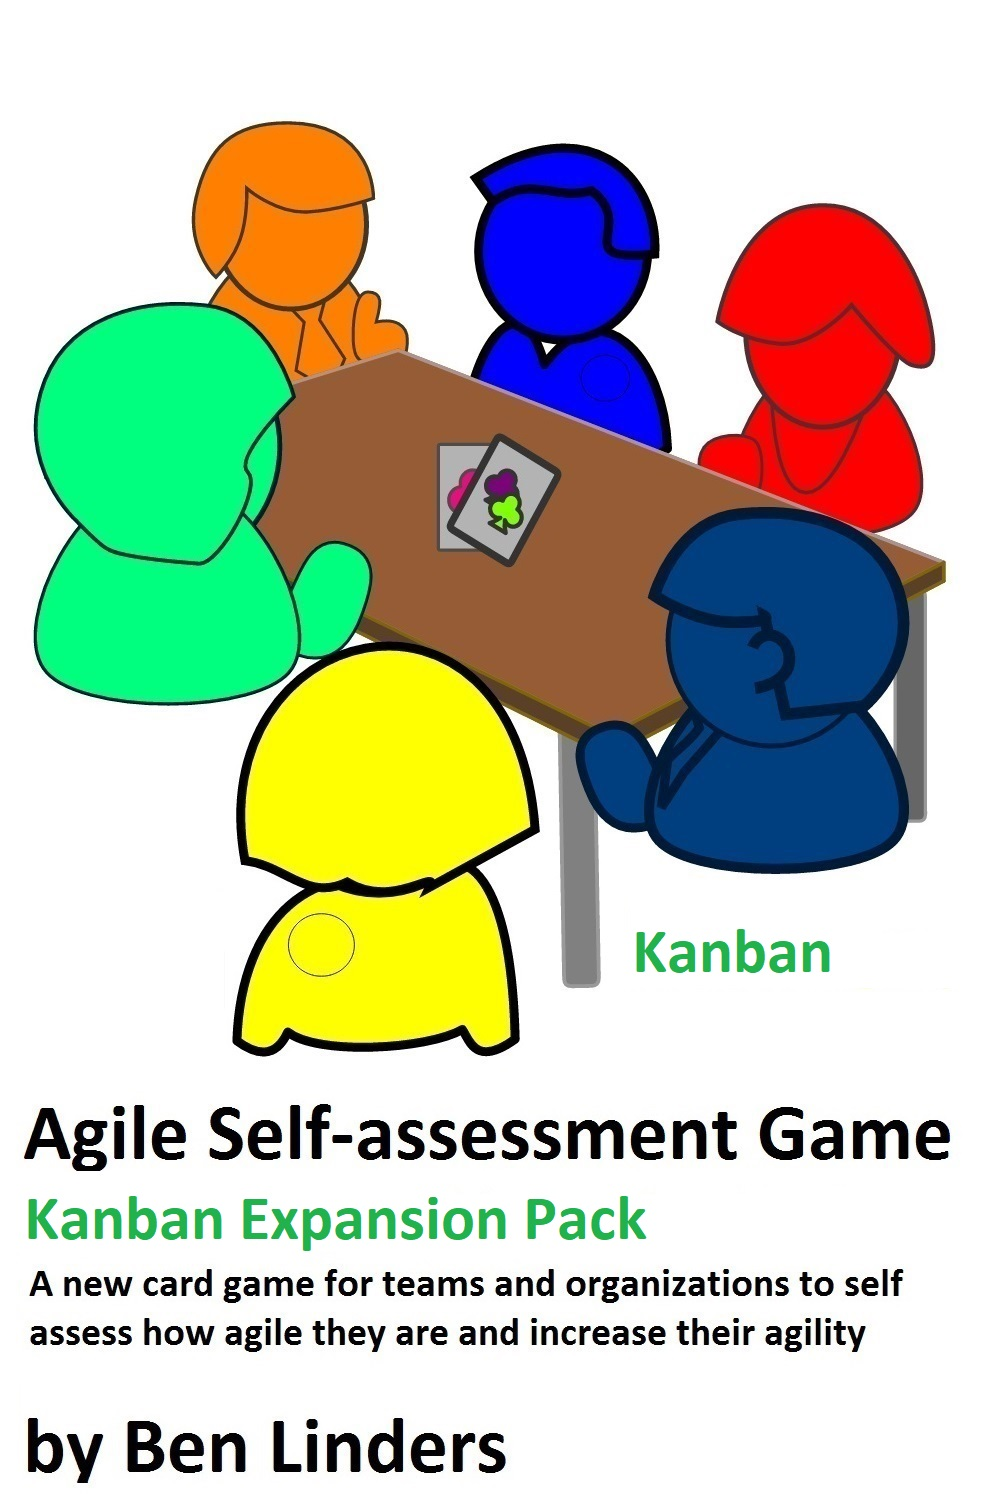 Kanban Expansion Pack for Agile Self-assessment game